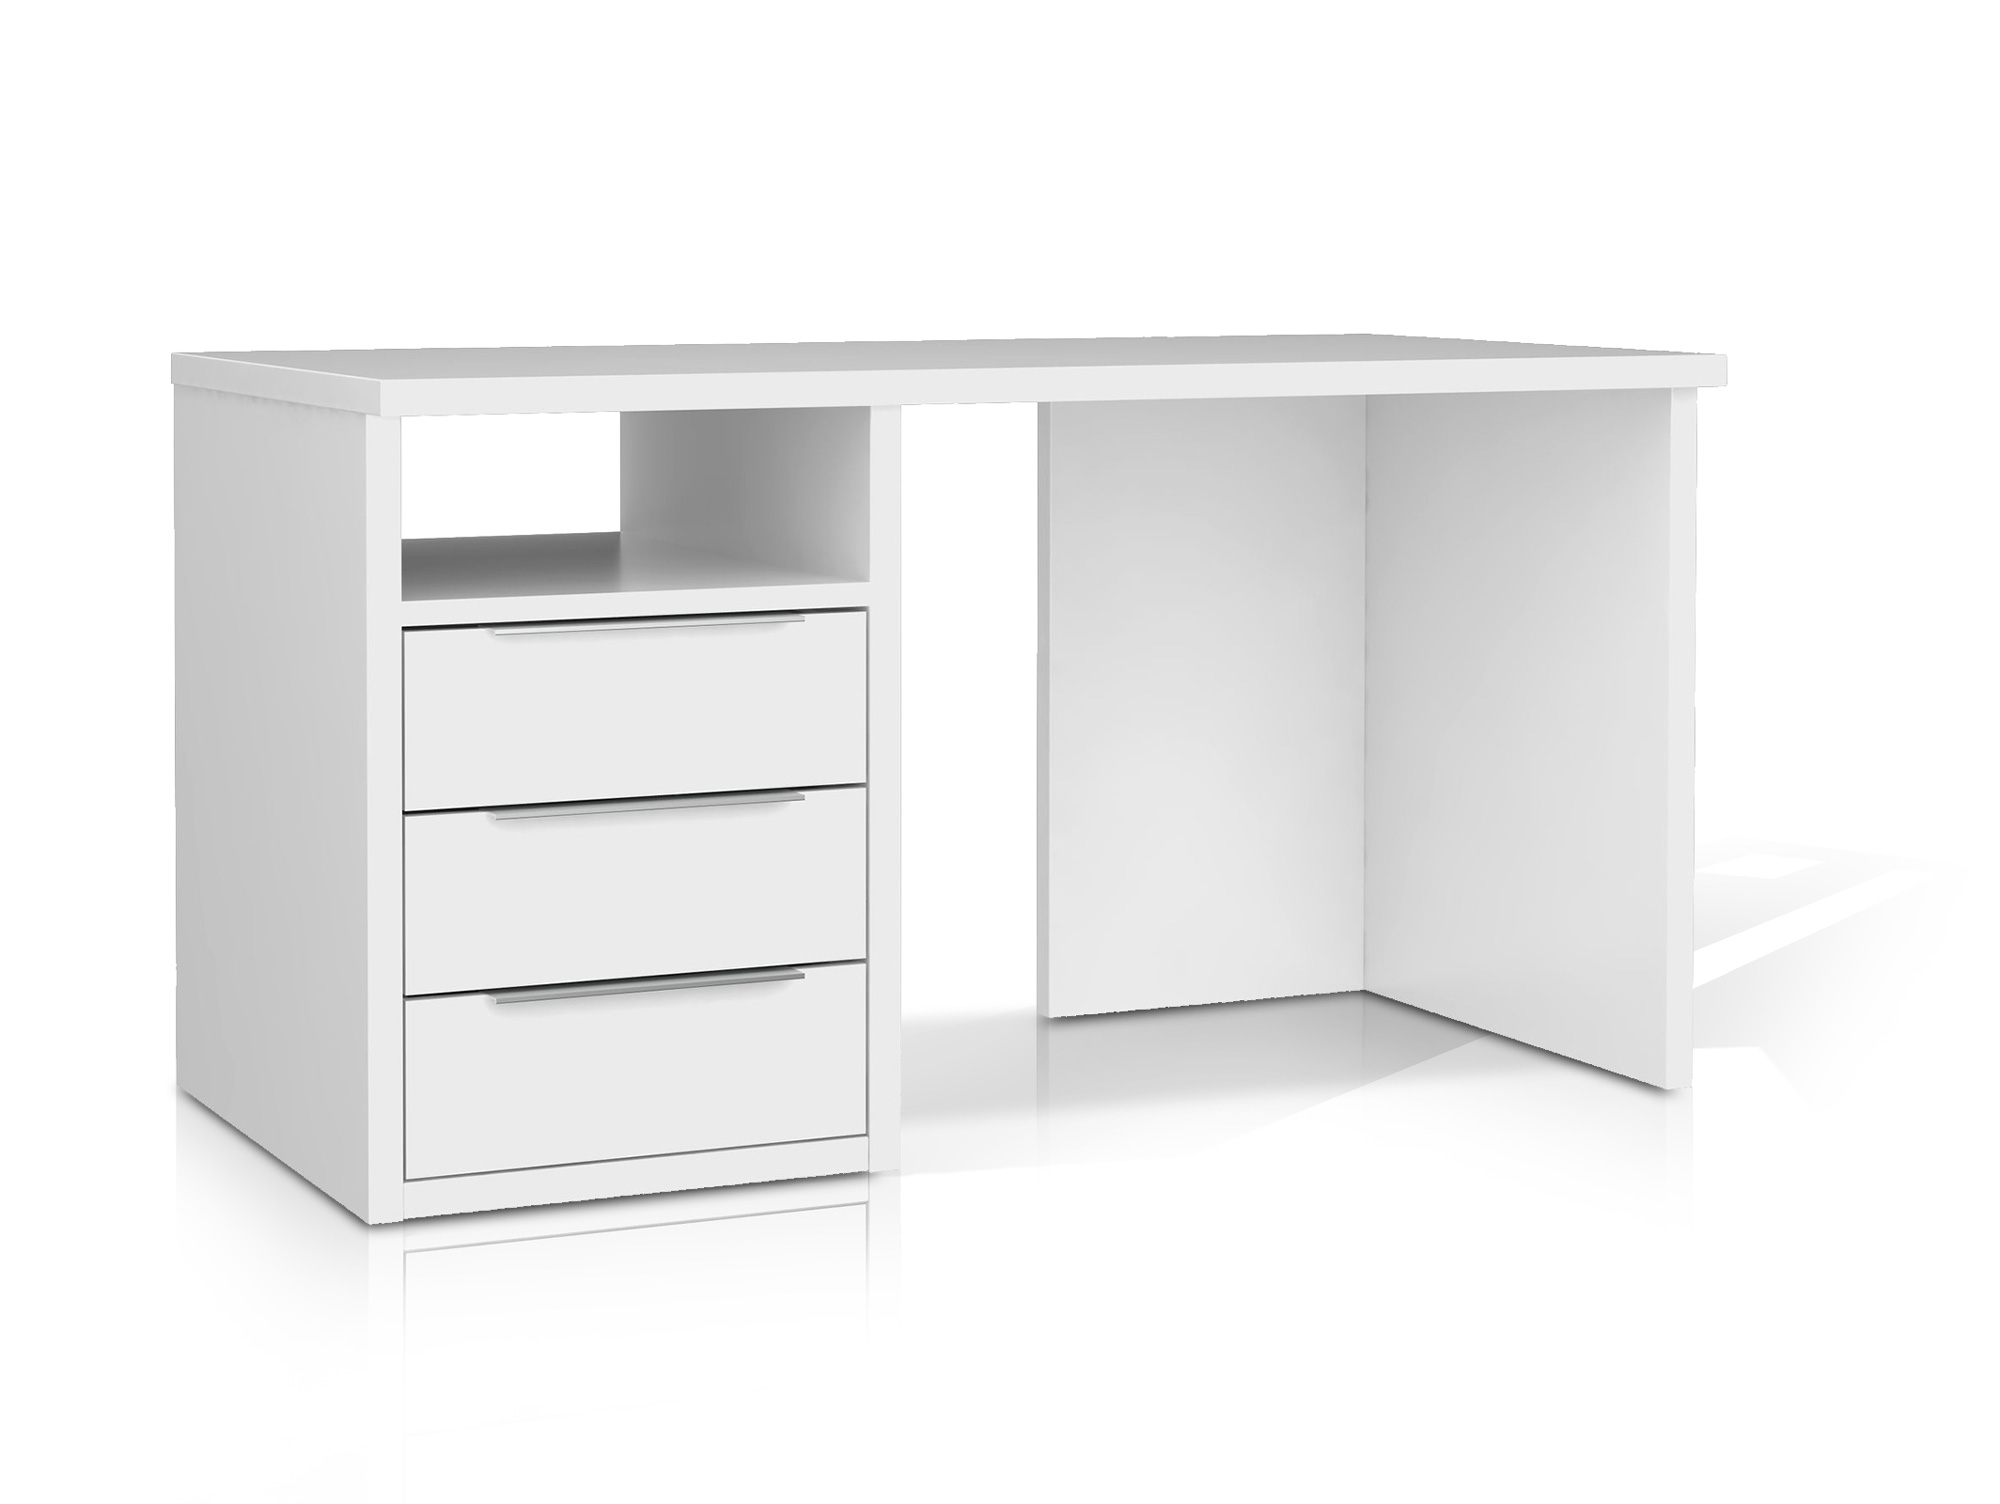 orca schreibtisch 140 cm schubladen links weiss. Black Bedroom Furniture Sets. Home Design Ideas